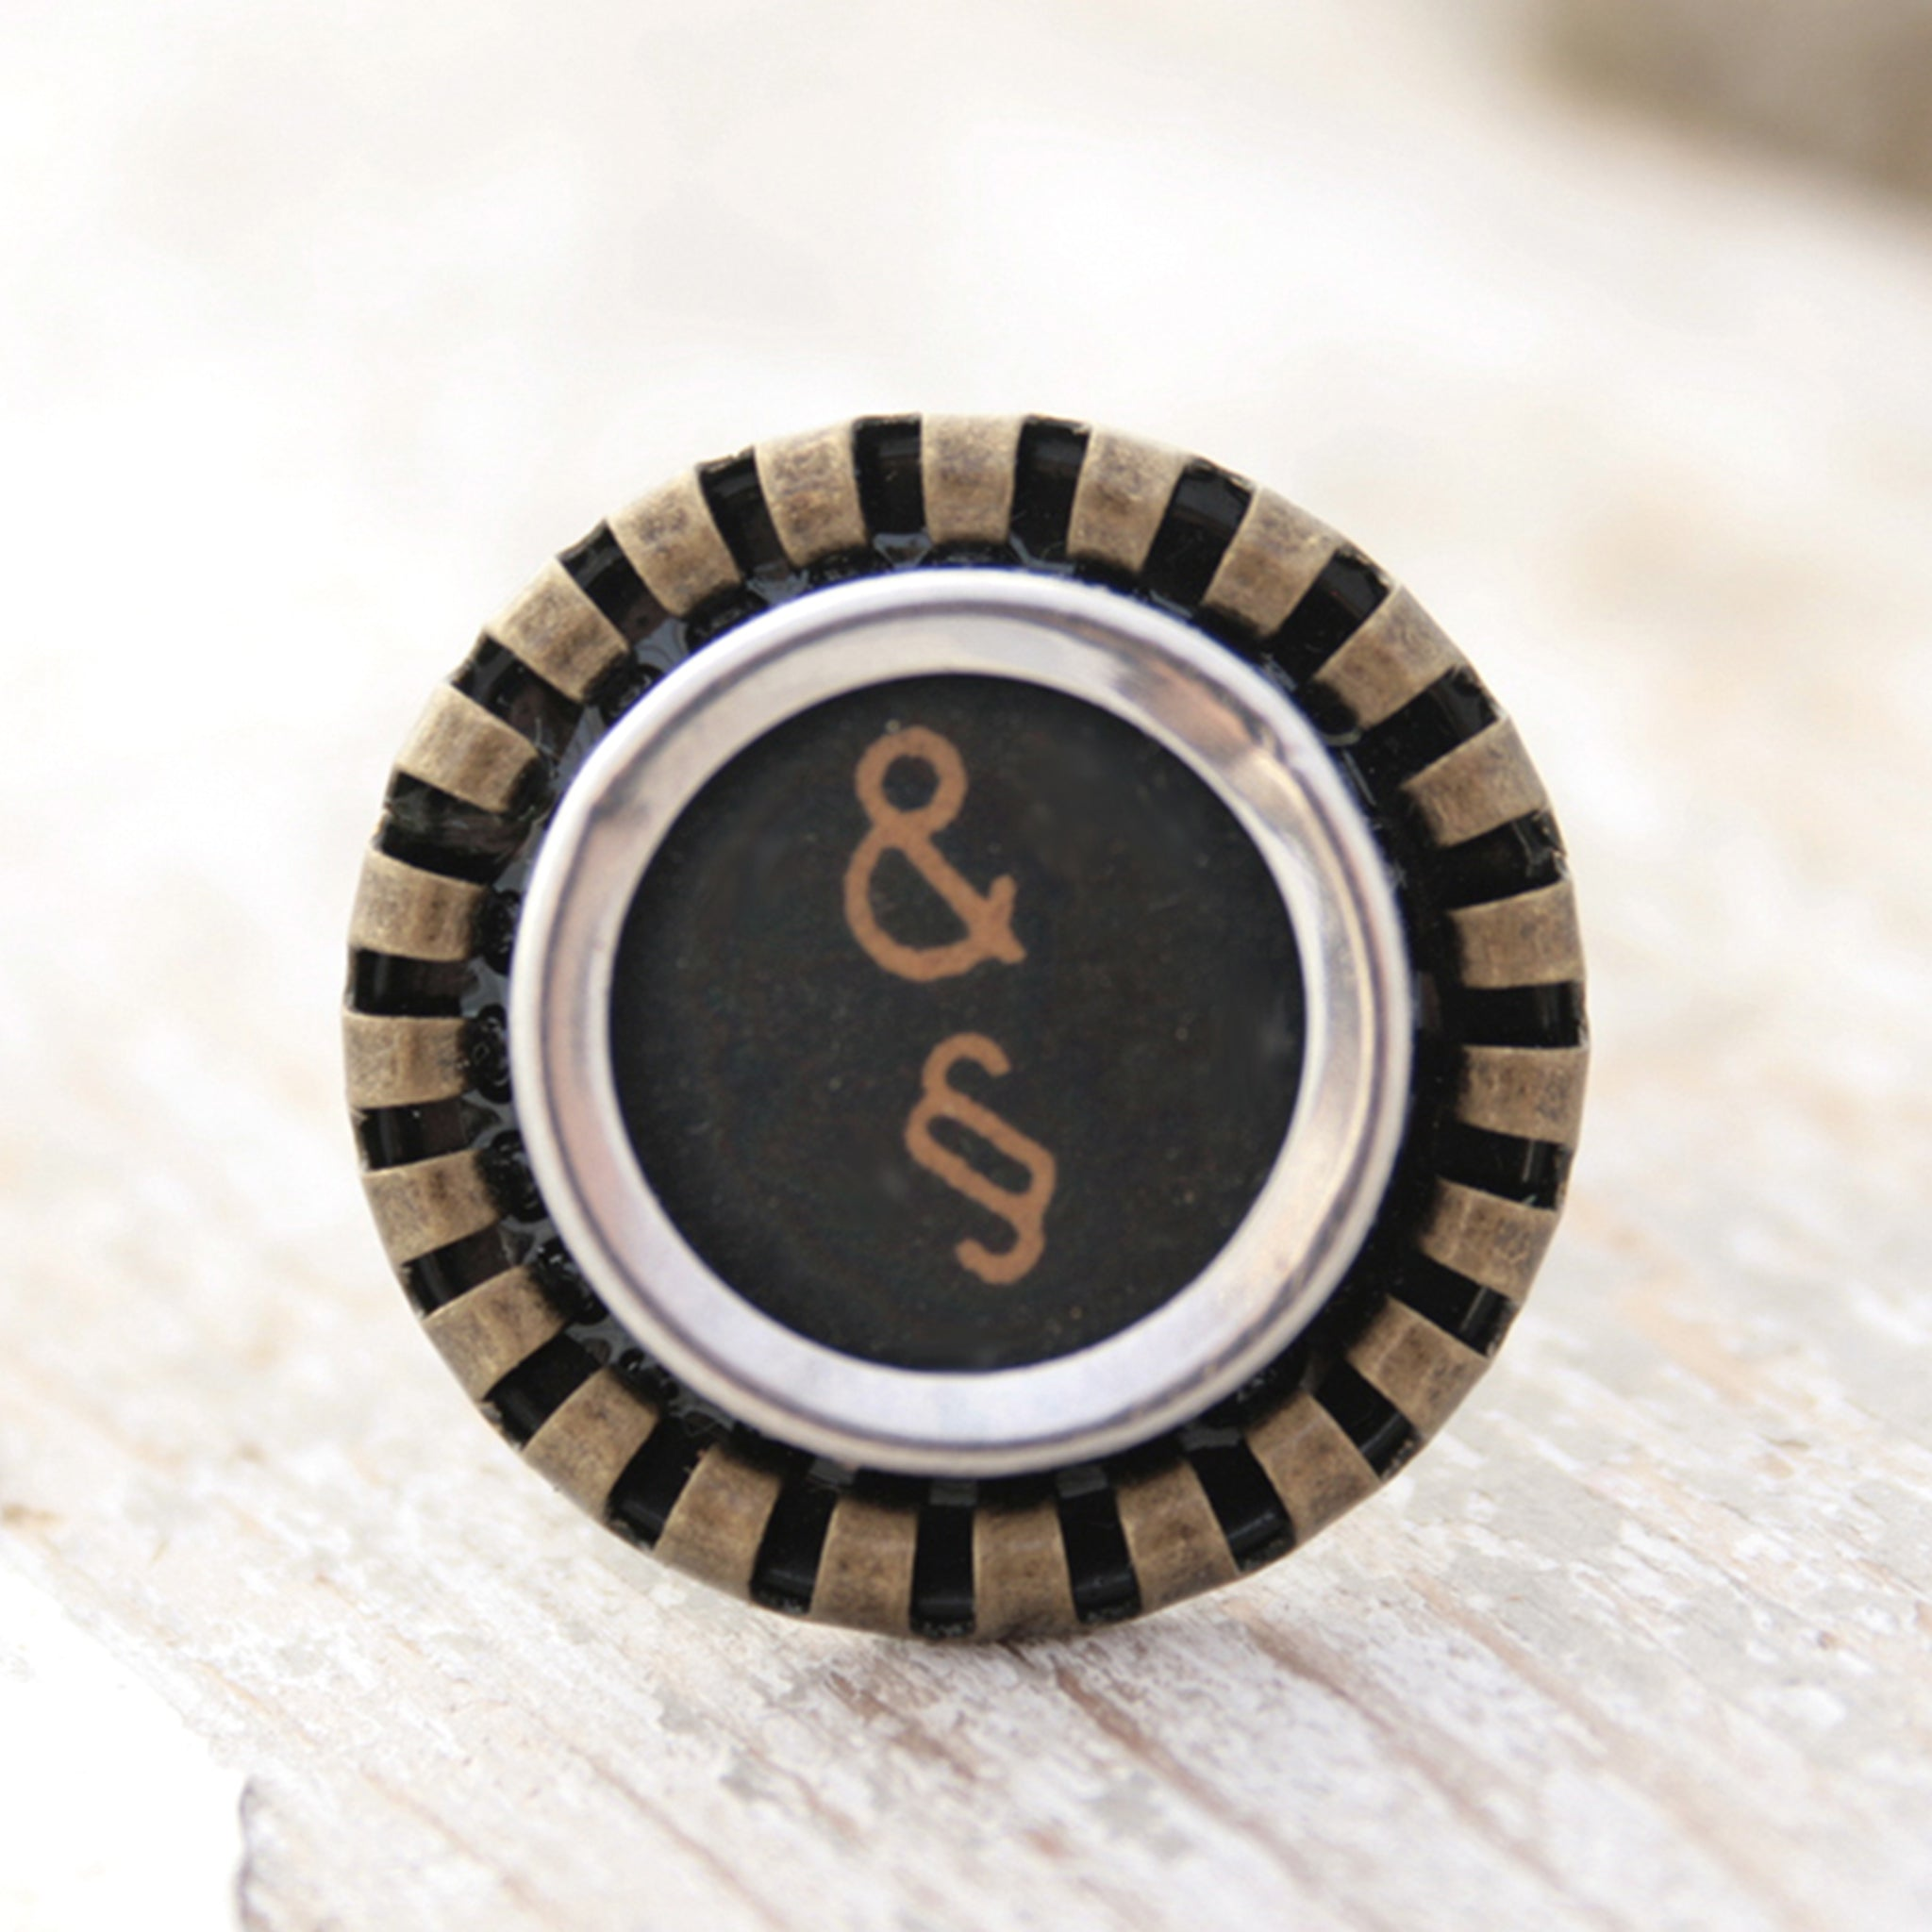 Black Ring featuring Amresand and paragraph signs made of typewriter key